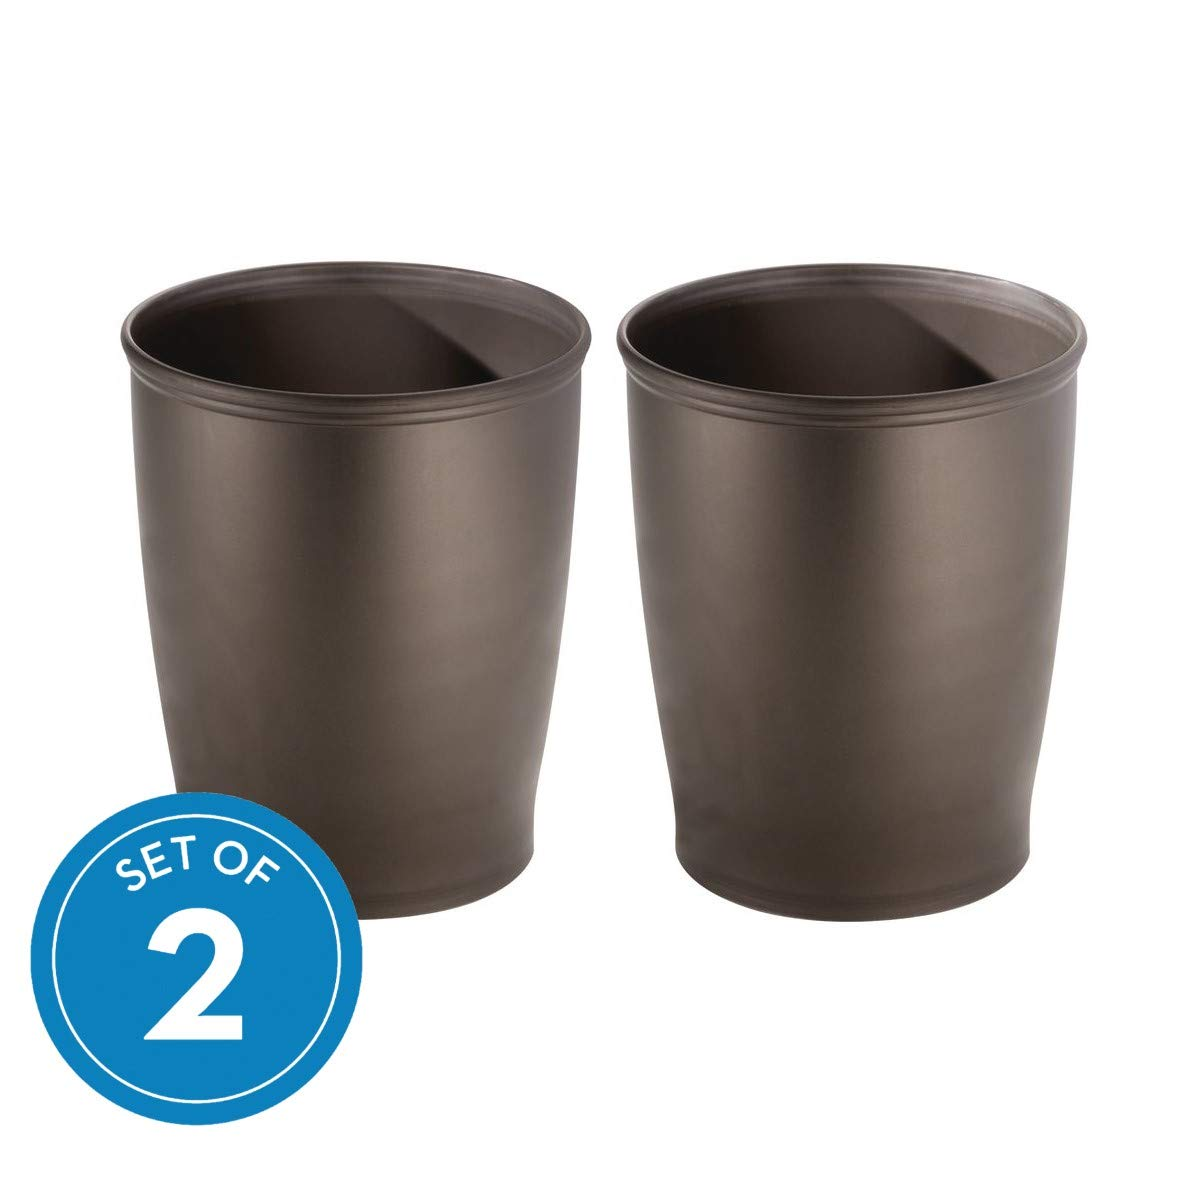 iDesign Kent Plastic Wastebasket Small Round Plastic Trash Can for Bathroom, Bedroom, Dorm, College, Office , Set of 2, Bronze by iDesign